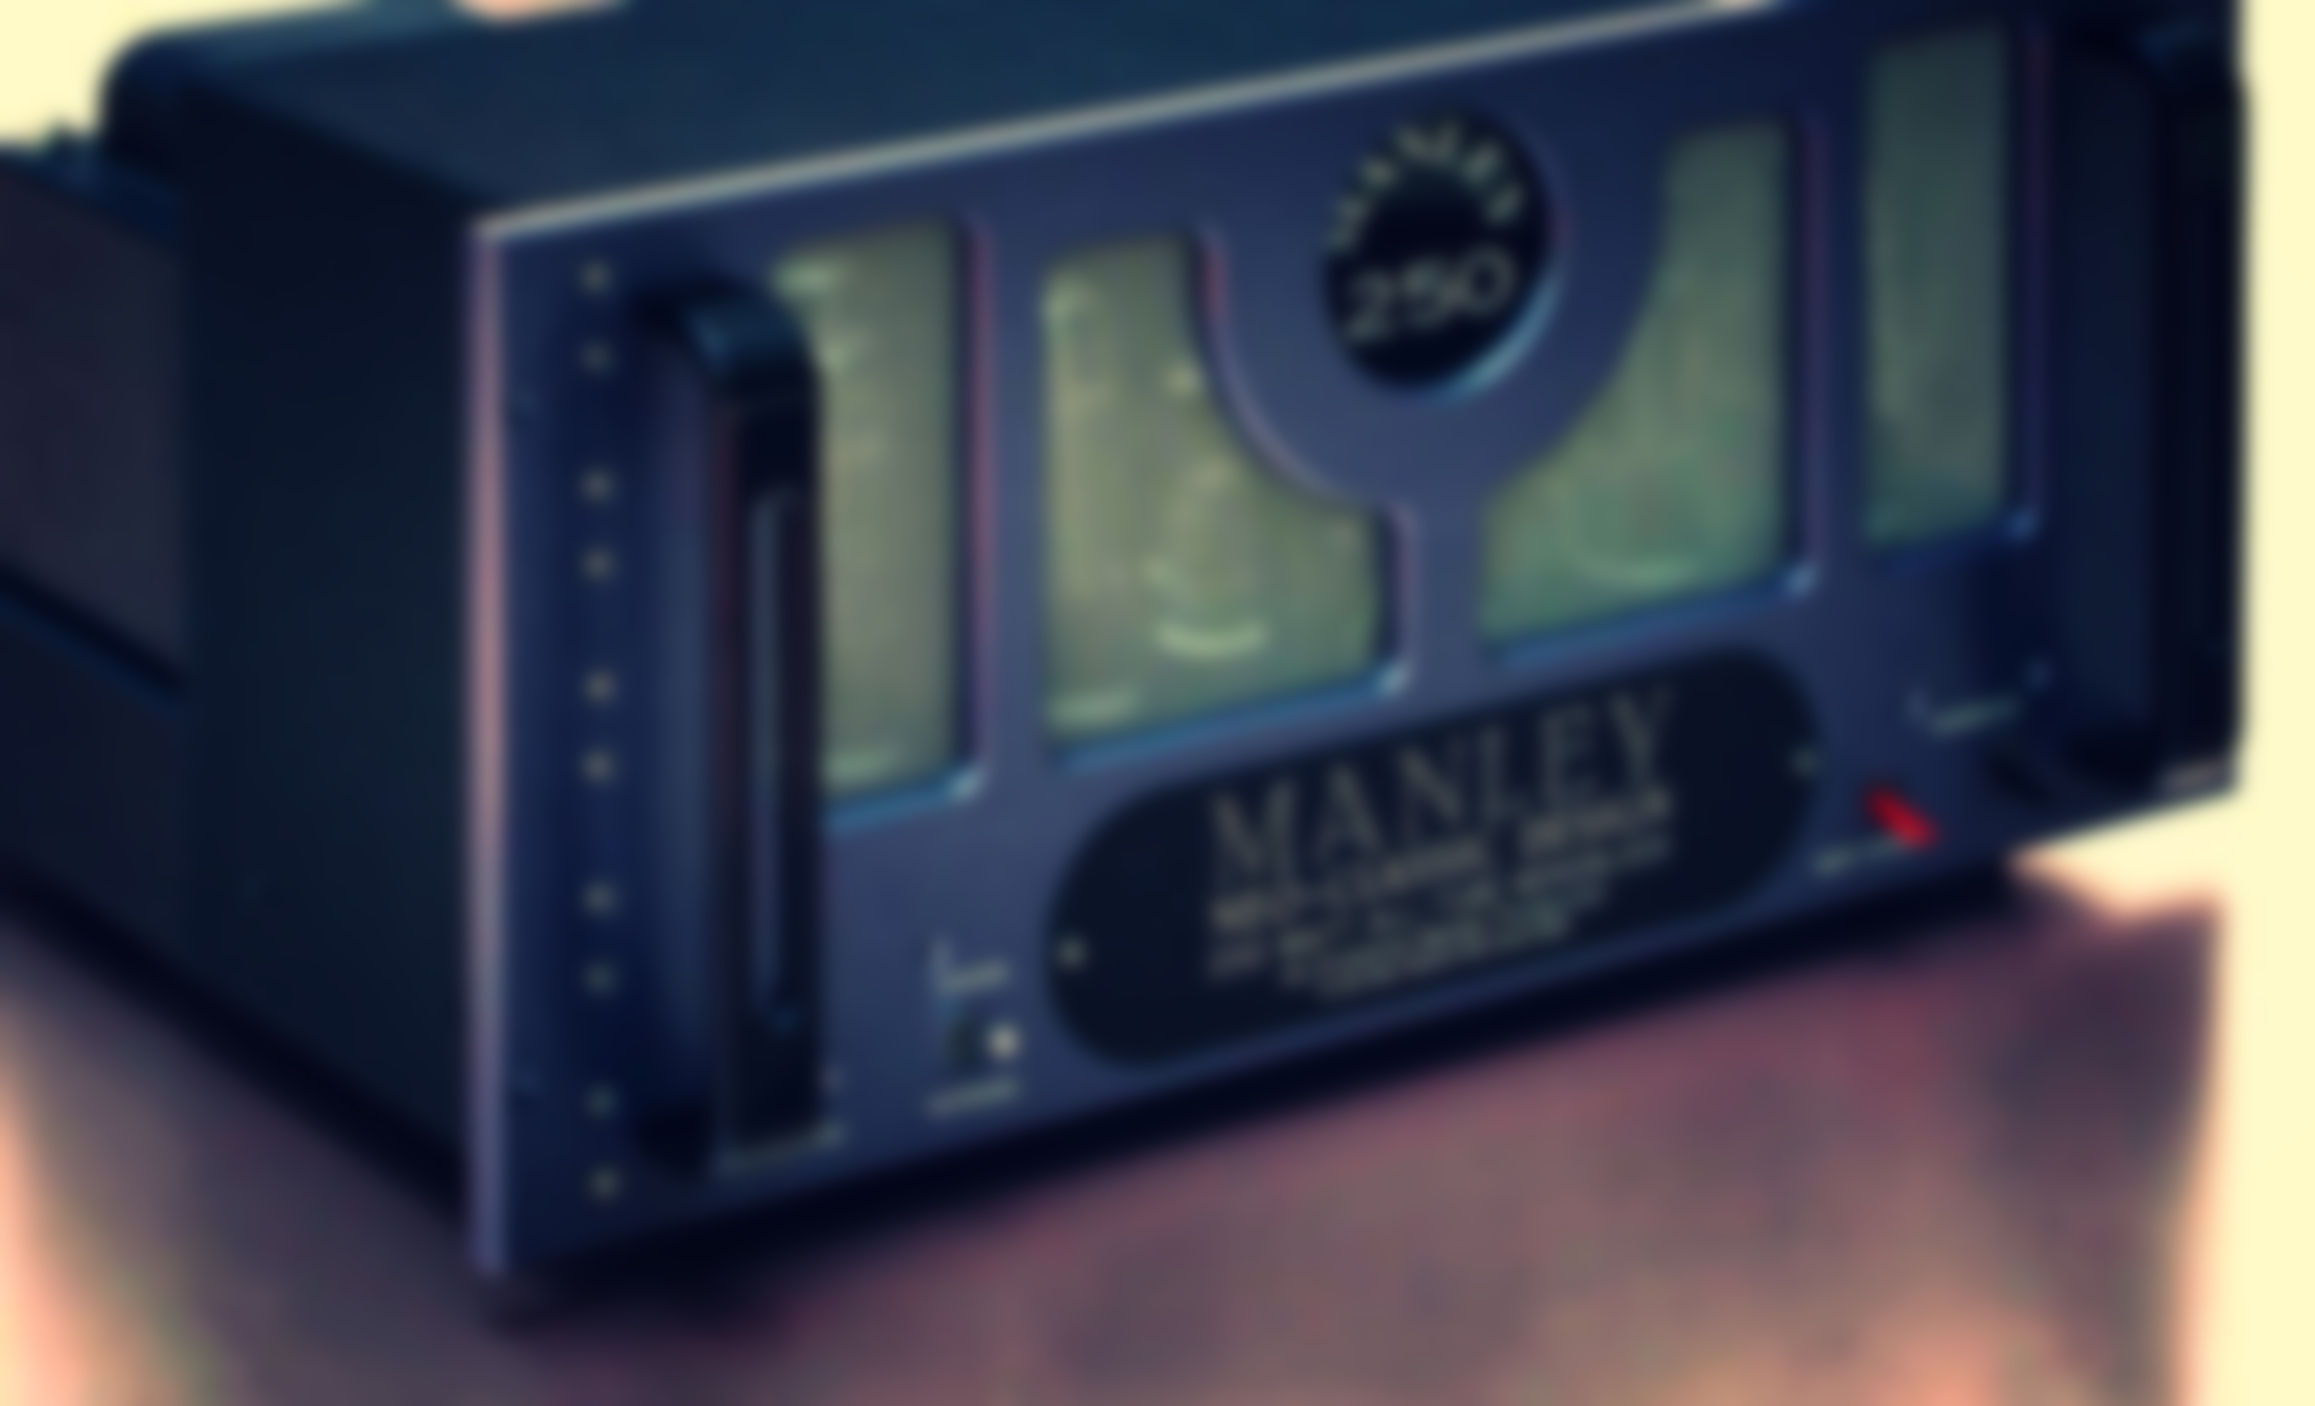 Manley Neo Classic 250w Monoblock Laboratories Inc Infrasonic And Ultrasonic Filter For High Fidelity Hi Fi Audio System Gear Pro Historynews Where To Buy Support Faq Register Product Tech Service Parts Download Manuals Legacy Products